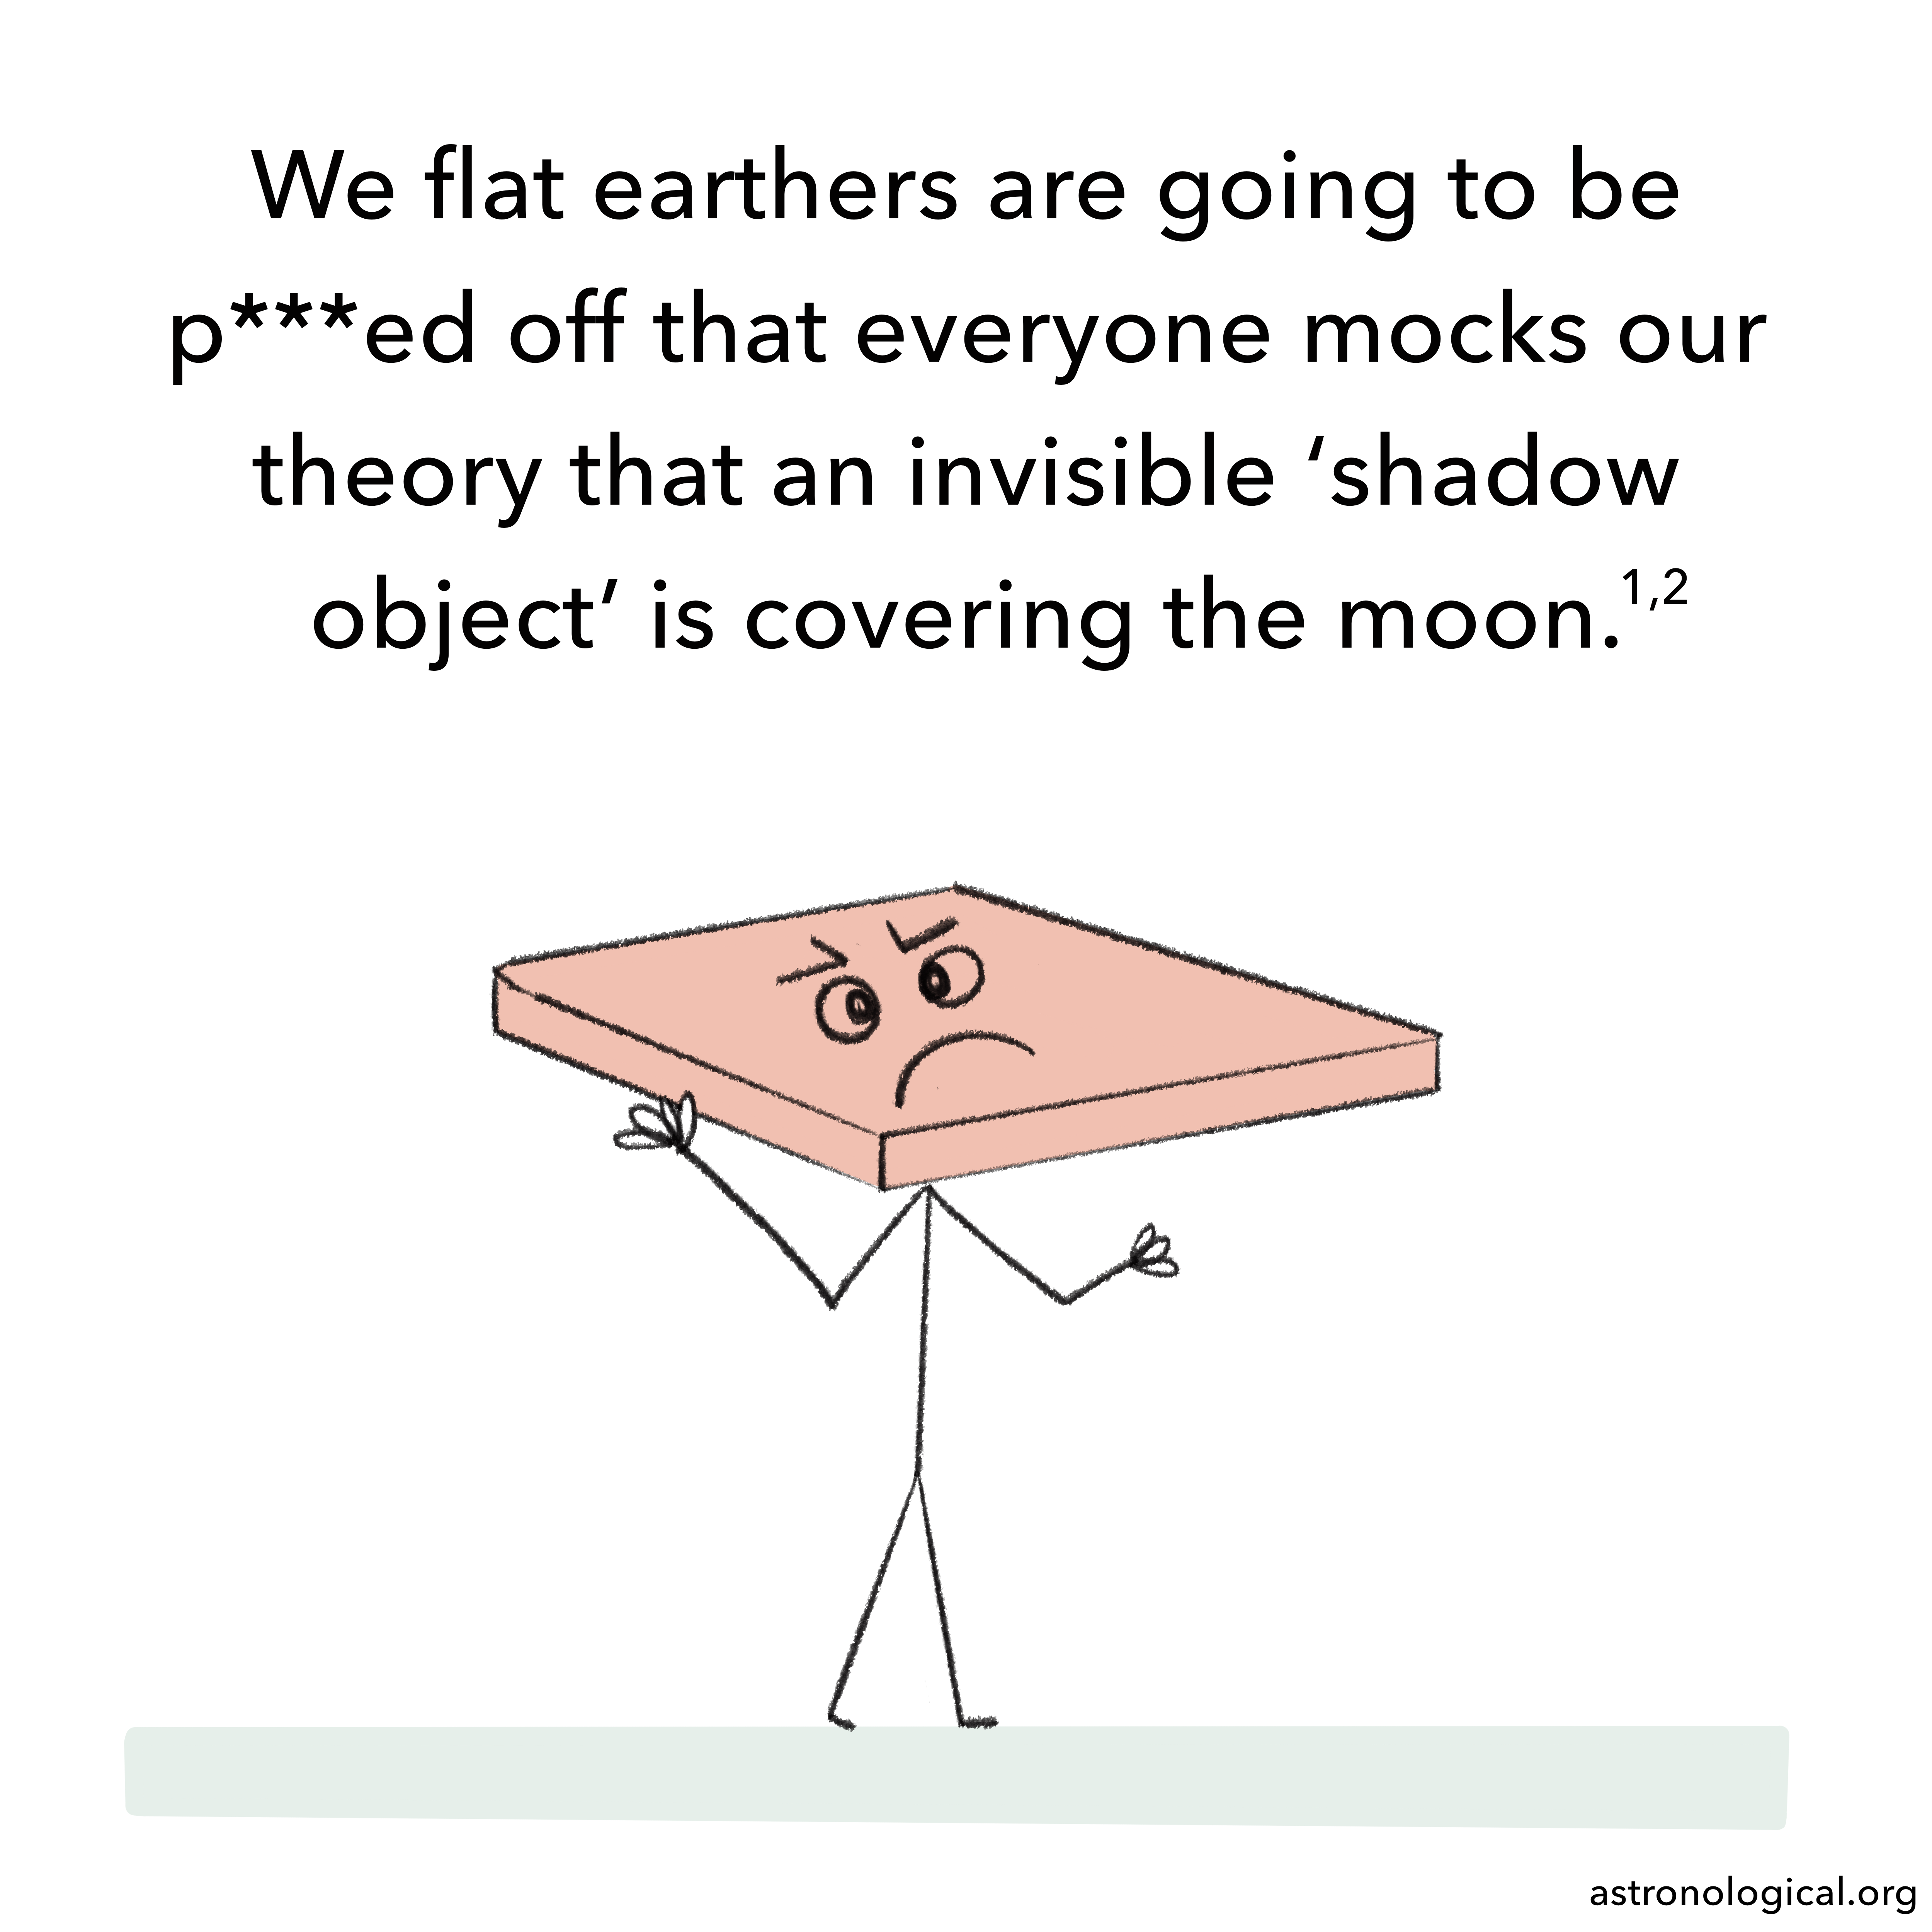 A stick figure with a large flat box for a head is shaking its fists angrily. The text reads: We flat earthers are going to be pissed off that everyone mocks our theory that an invisible 'shadow object' is covering the moon.